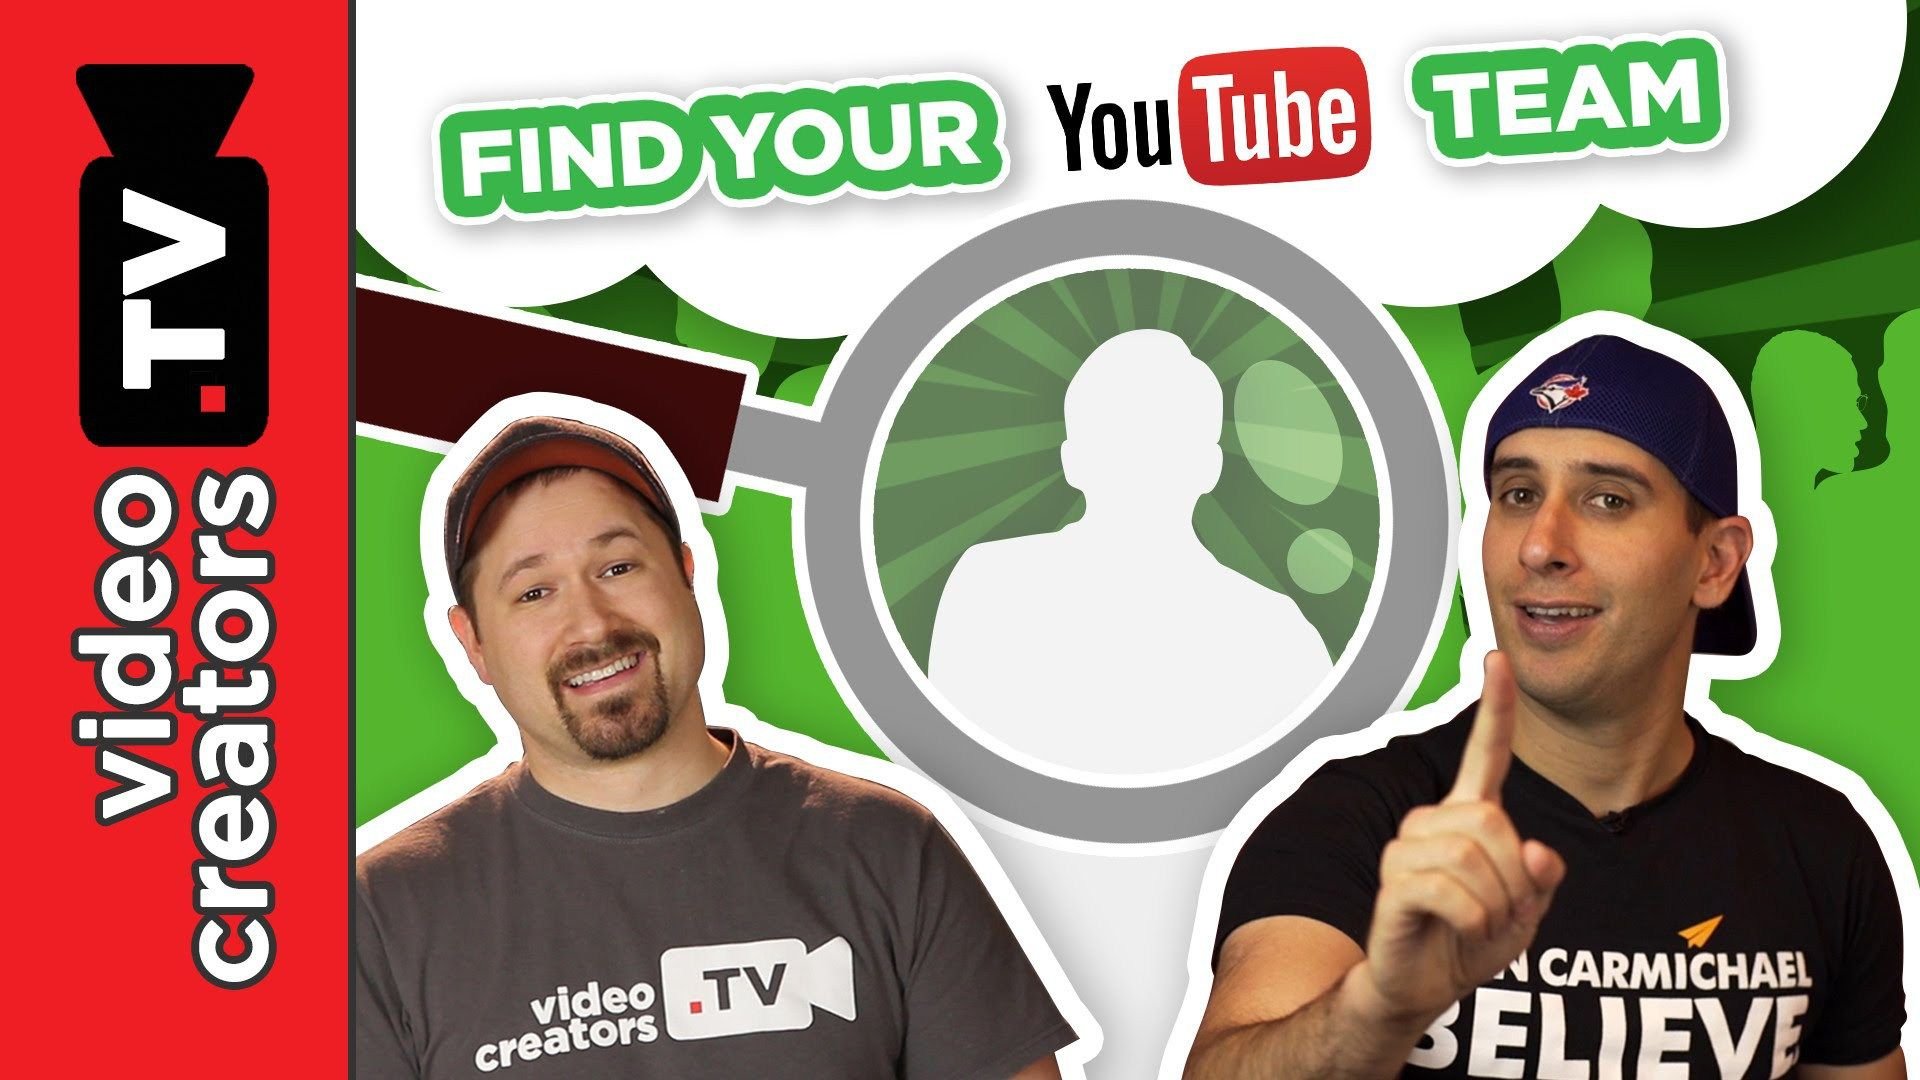 How To Find and Hire your YouTube Team - WATCH VIDEO here -> http://makeextramoneyonline.org/how-to-find-and-hire-your-youtube-team/ -    If your YouTube channel is growing and you want to know how to find and hire people for your YouTube team, there's a few places you can do that. I use personal references, Craigslist, and UpWork to find and hire people for my team, like my video editor, business manager, administrative...